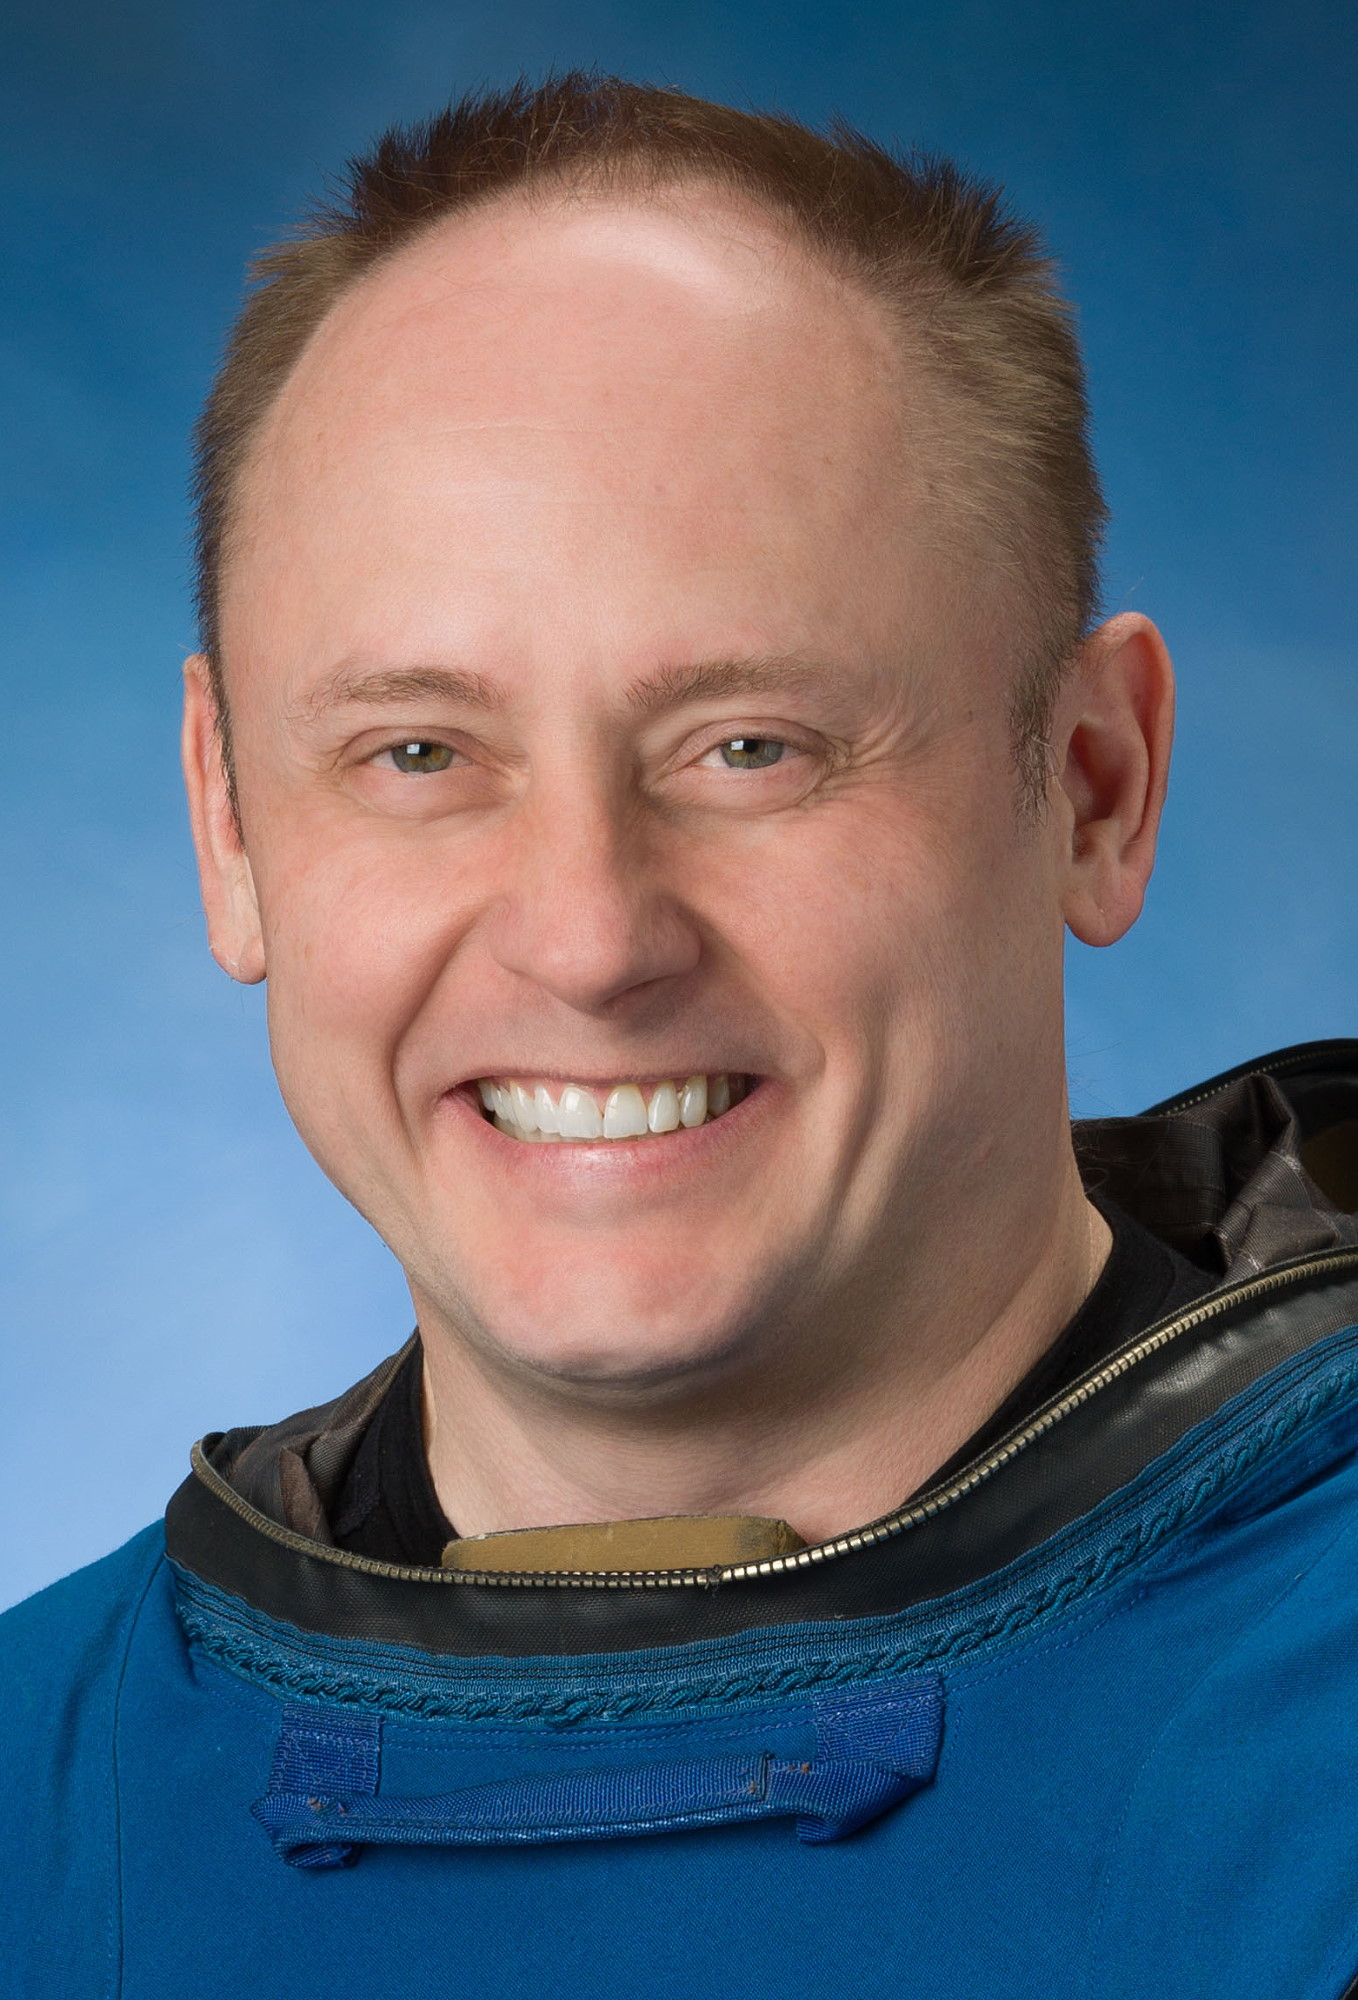 astronaut mike fincke - photo #4